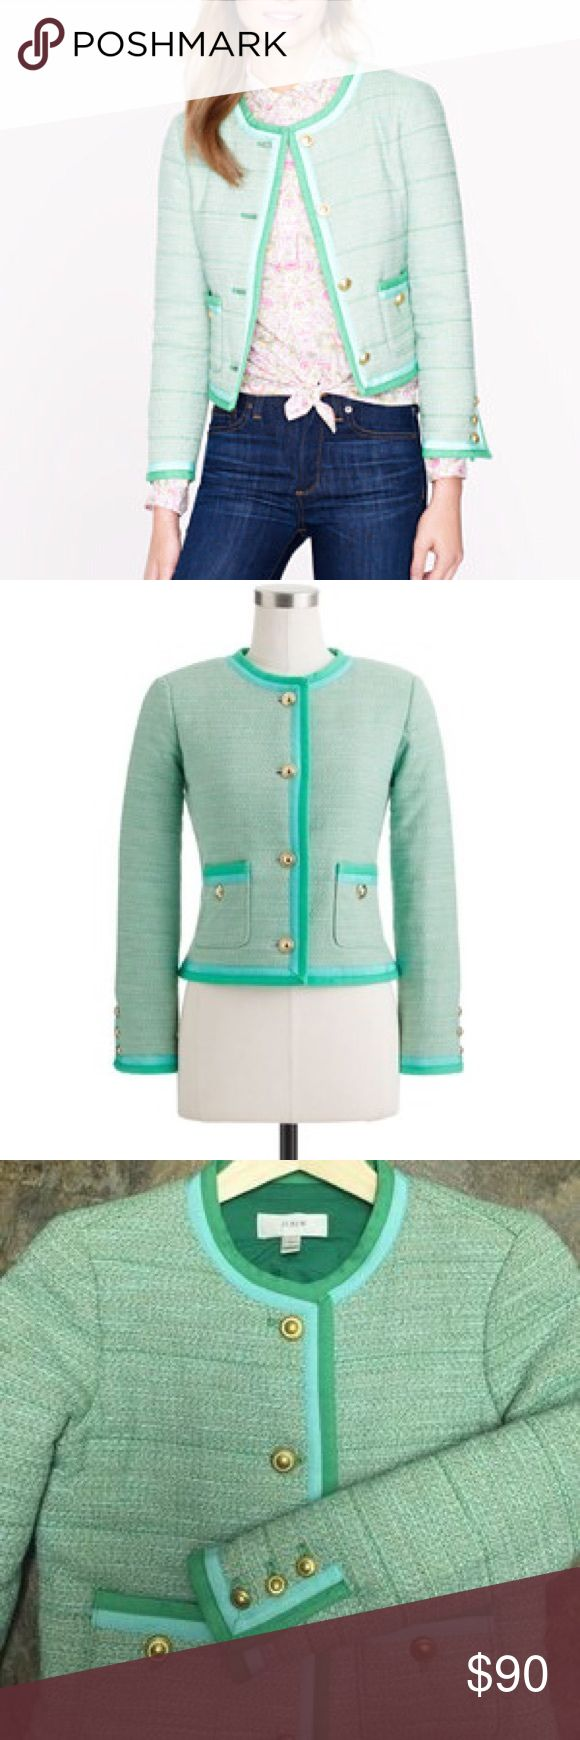 J.Crew tweed mint jacket!! NWT!!! Brand new mint jacket from J.Crew! Comes with extra buttons. J. Crew Jackets & Coats Blazers